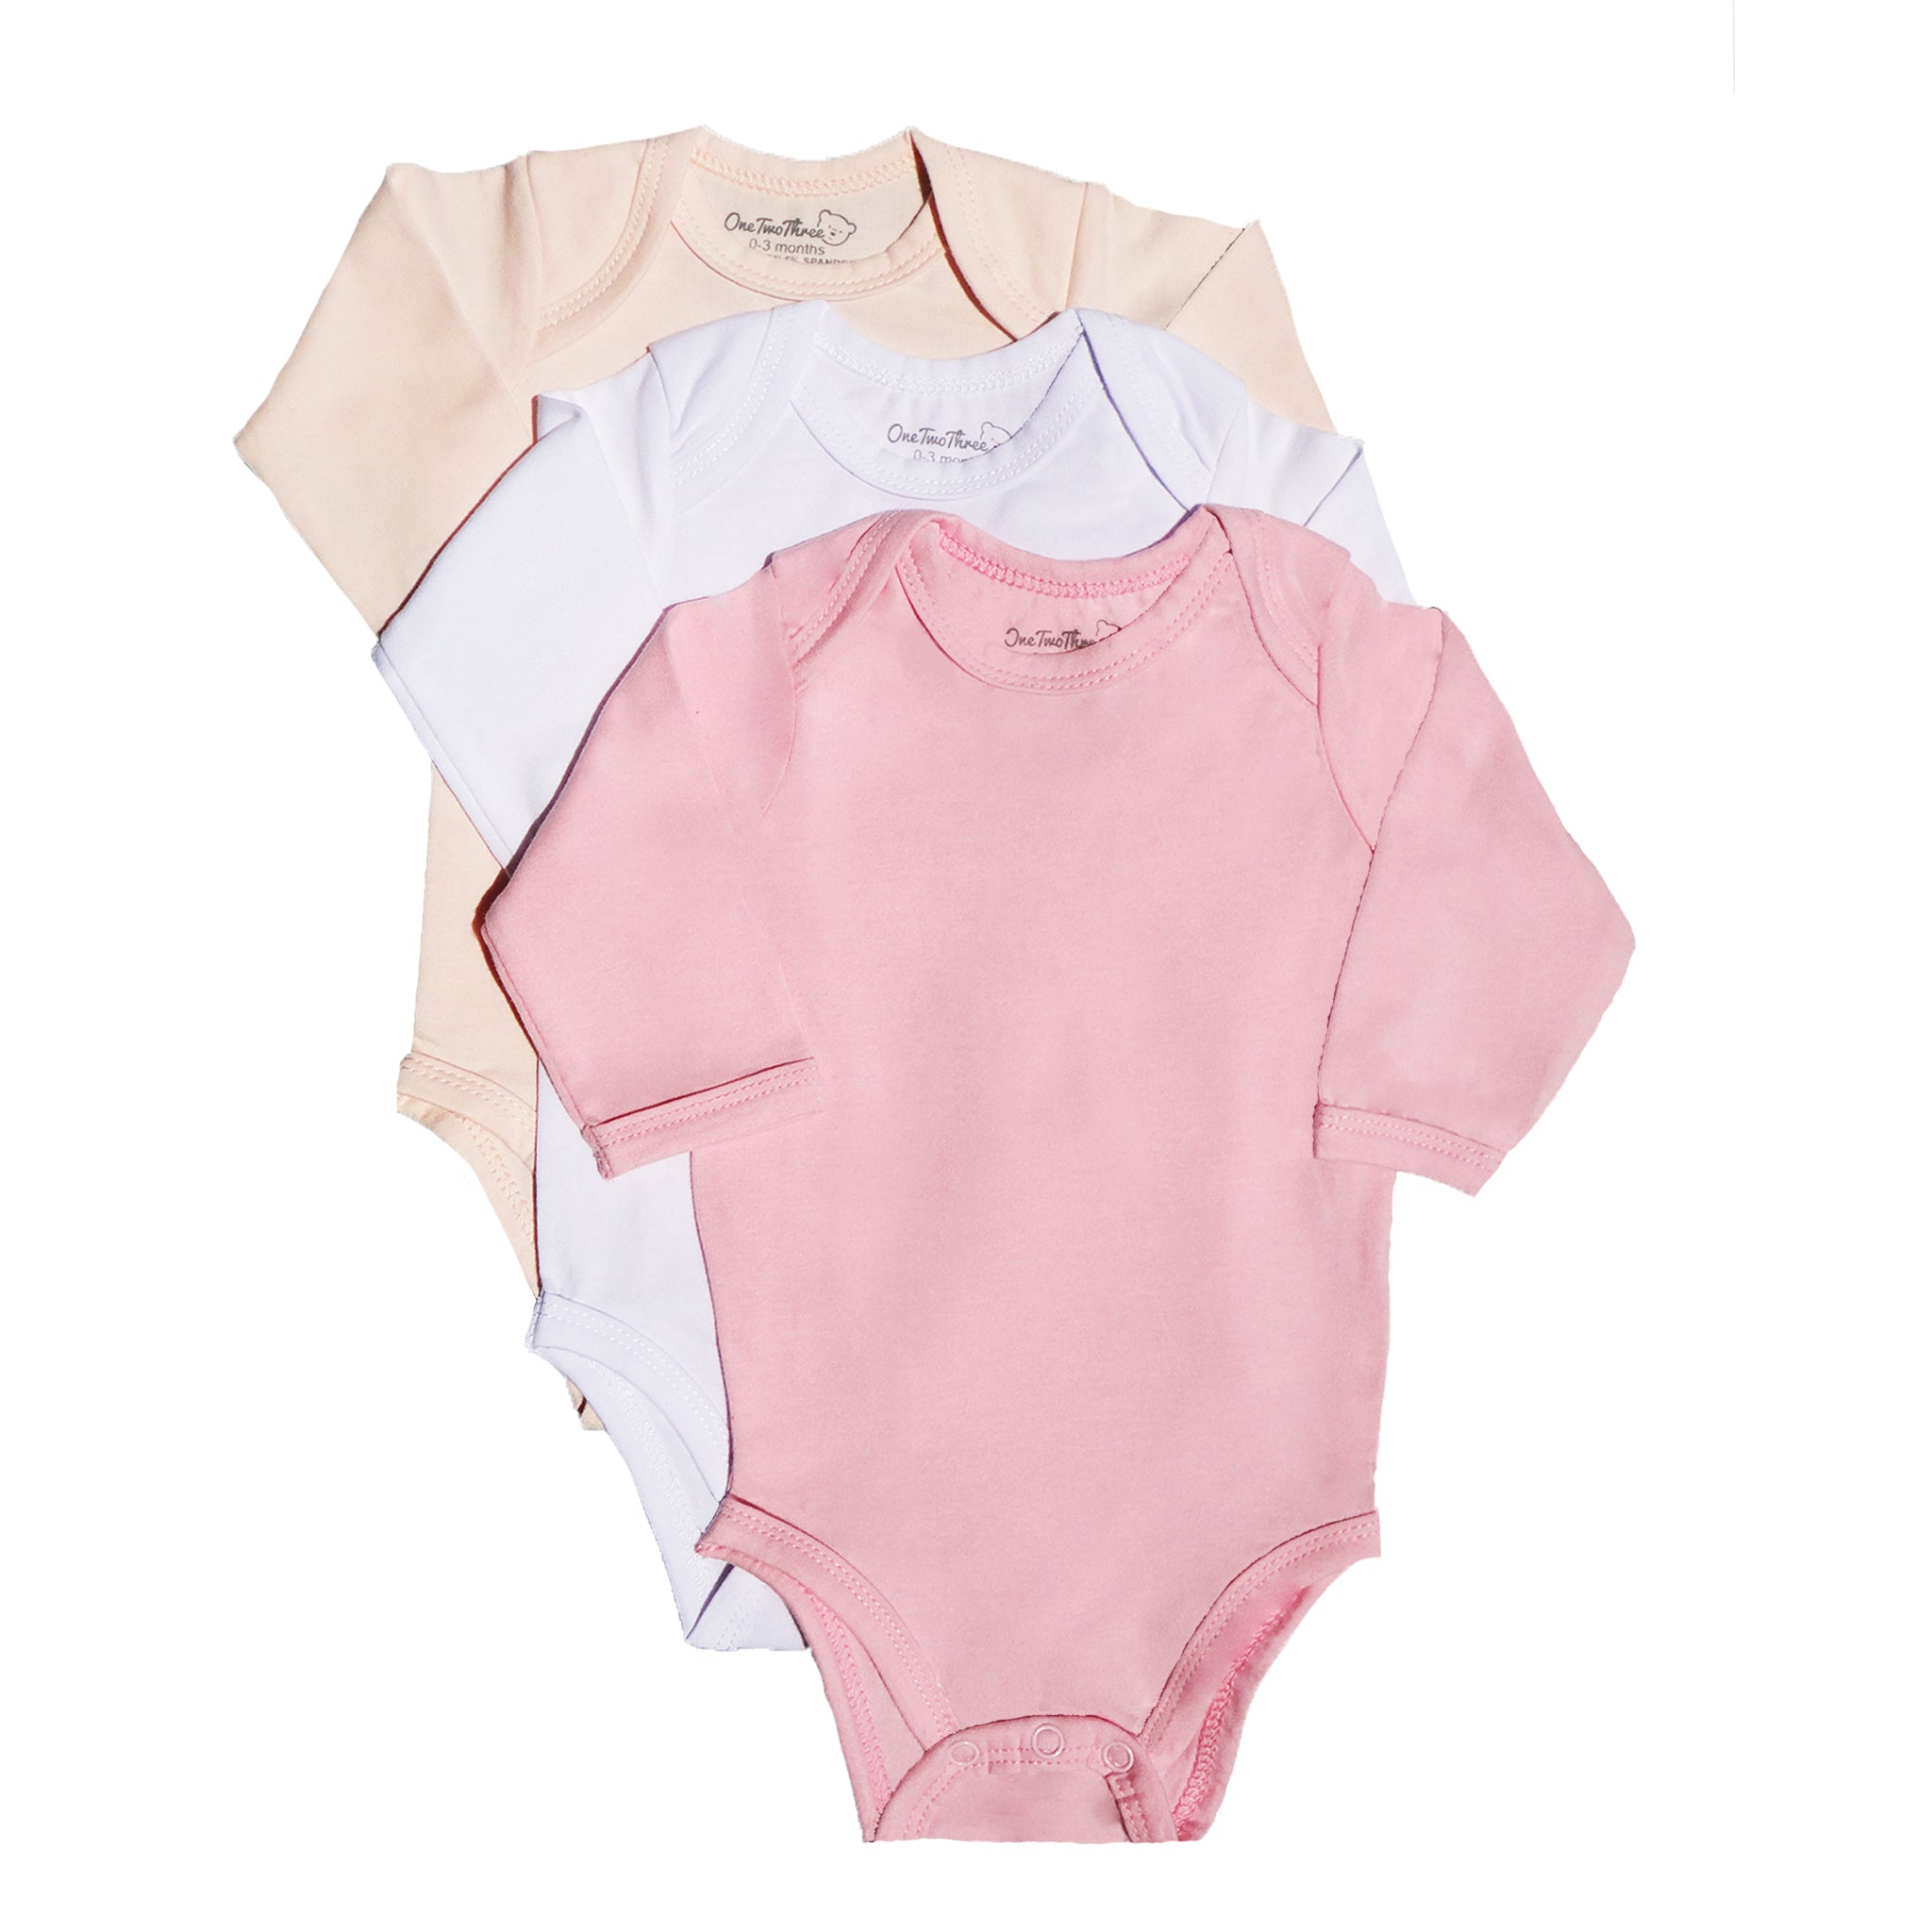 123 Bear Baby Soft Cotton Spandex Pants with Feet